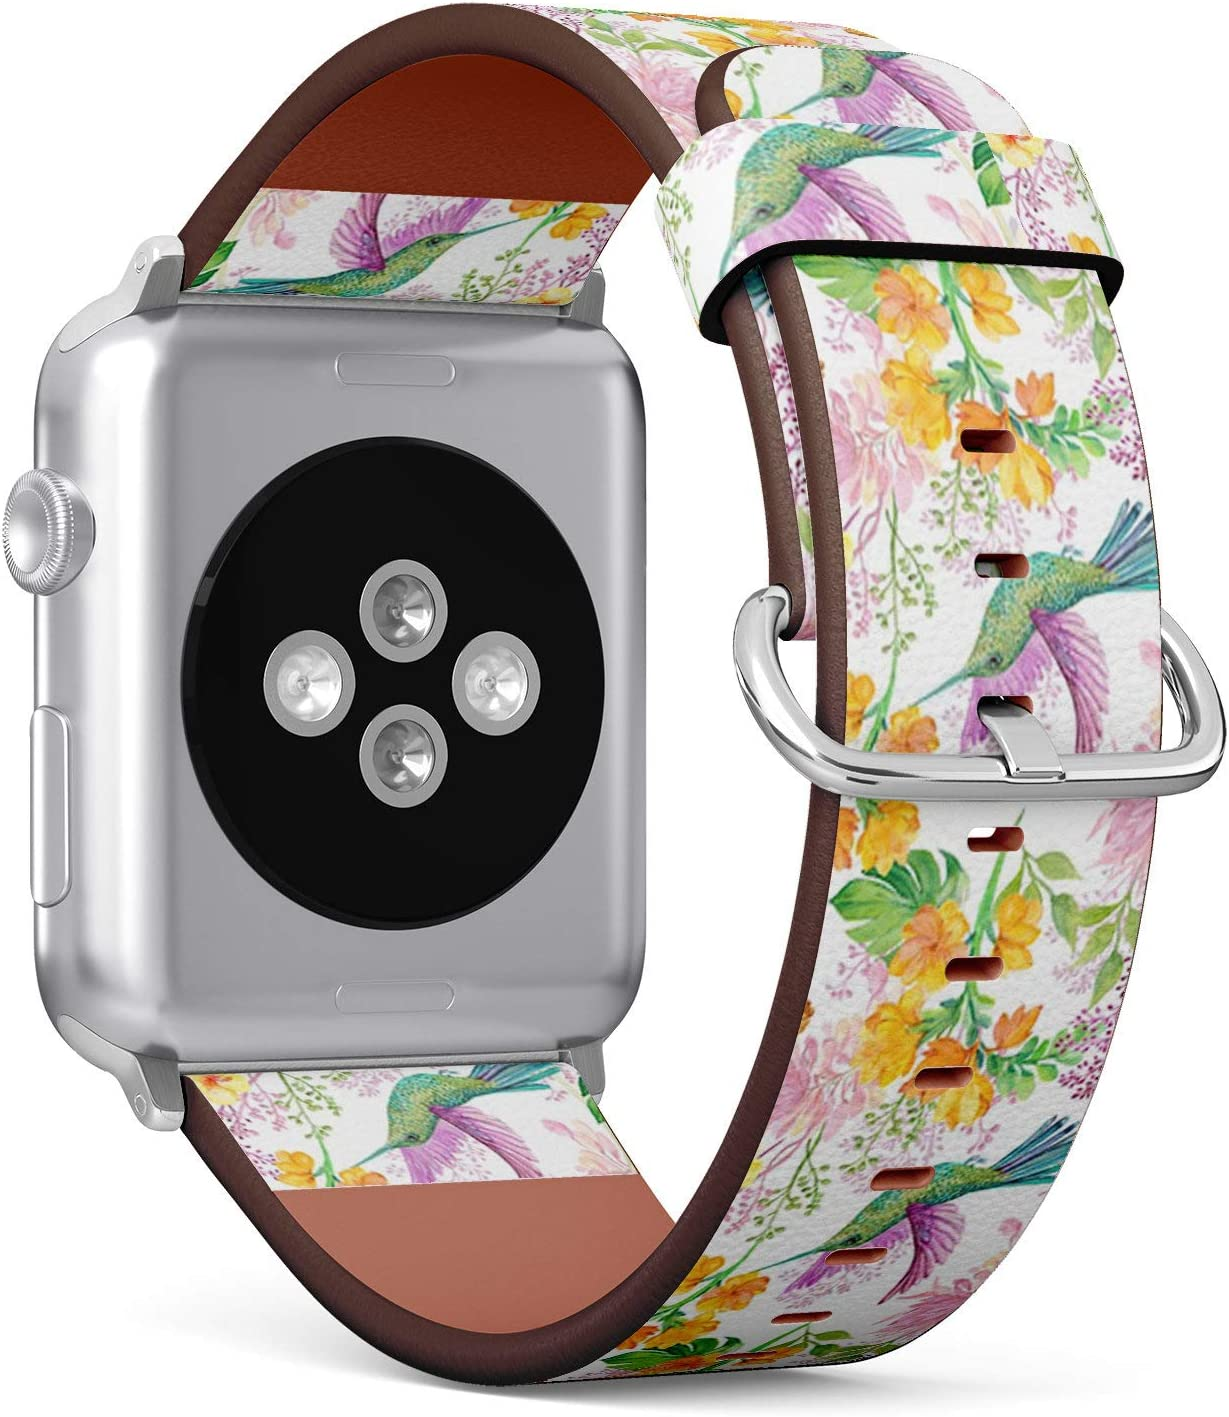 Compatible with Apple Watch 38mm & 40mm (Series 5, 4, 3, 2, 1) Leather Watch Wrist Band Strap Bracelet with Stainless Steel Clasp and Adapters (Floral Bird Hummingbird)